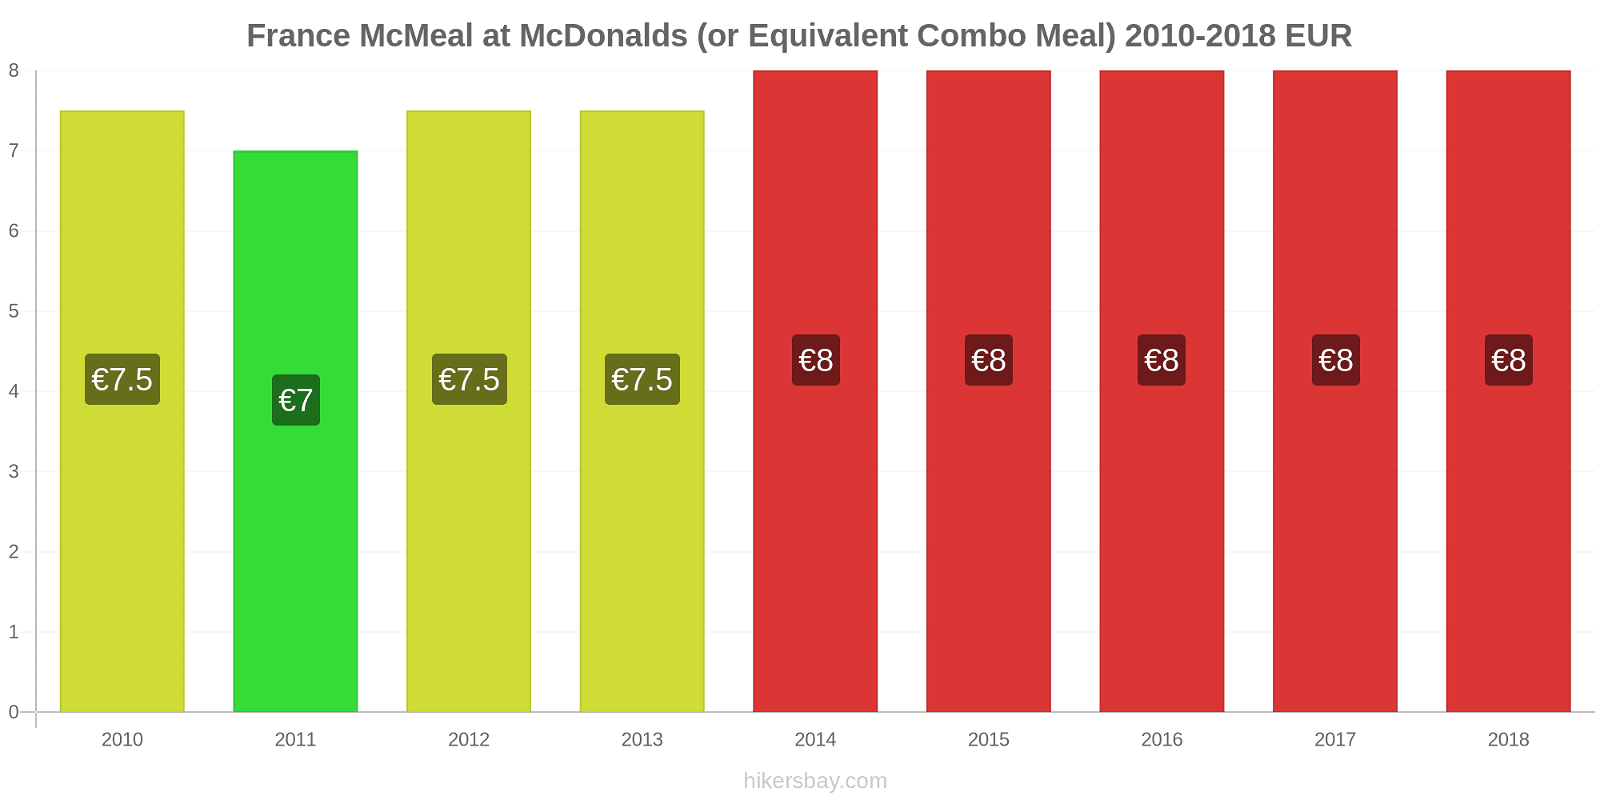 France price changes McMeal at McDonalds (or Equivalent Combo Meal) hikersbay.com